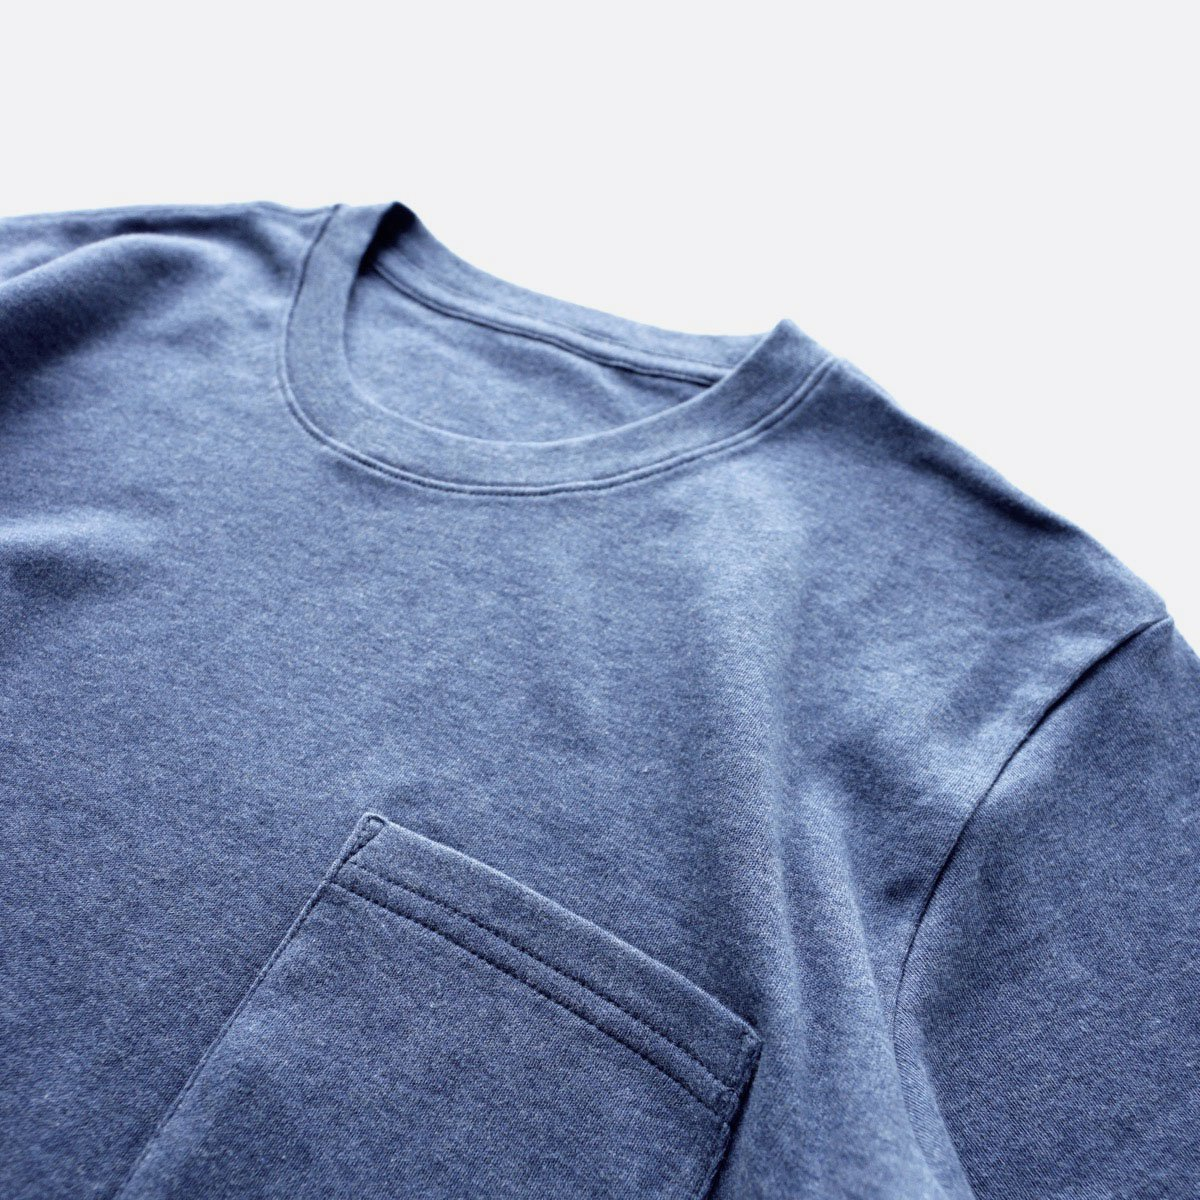 THE INOUE BROTHERS…  Pocket T-shirt (Blue)4